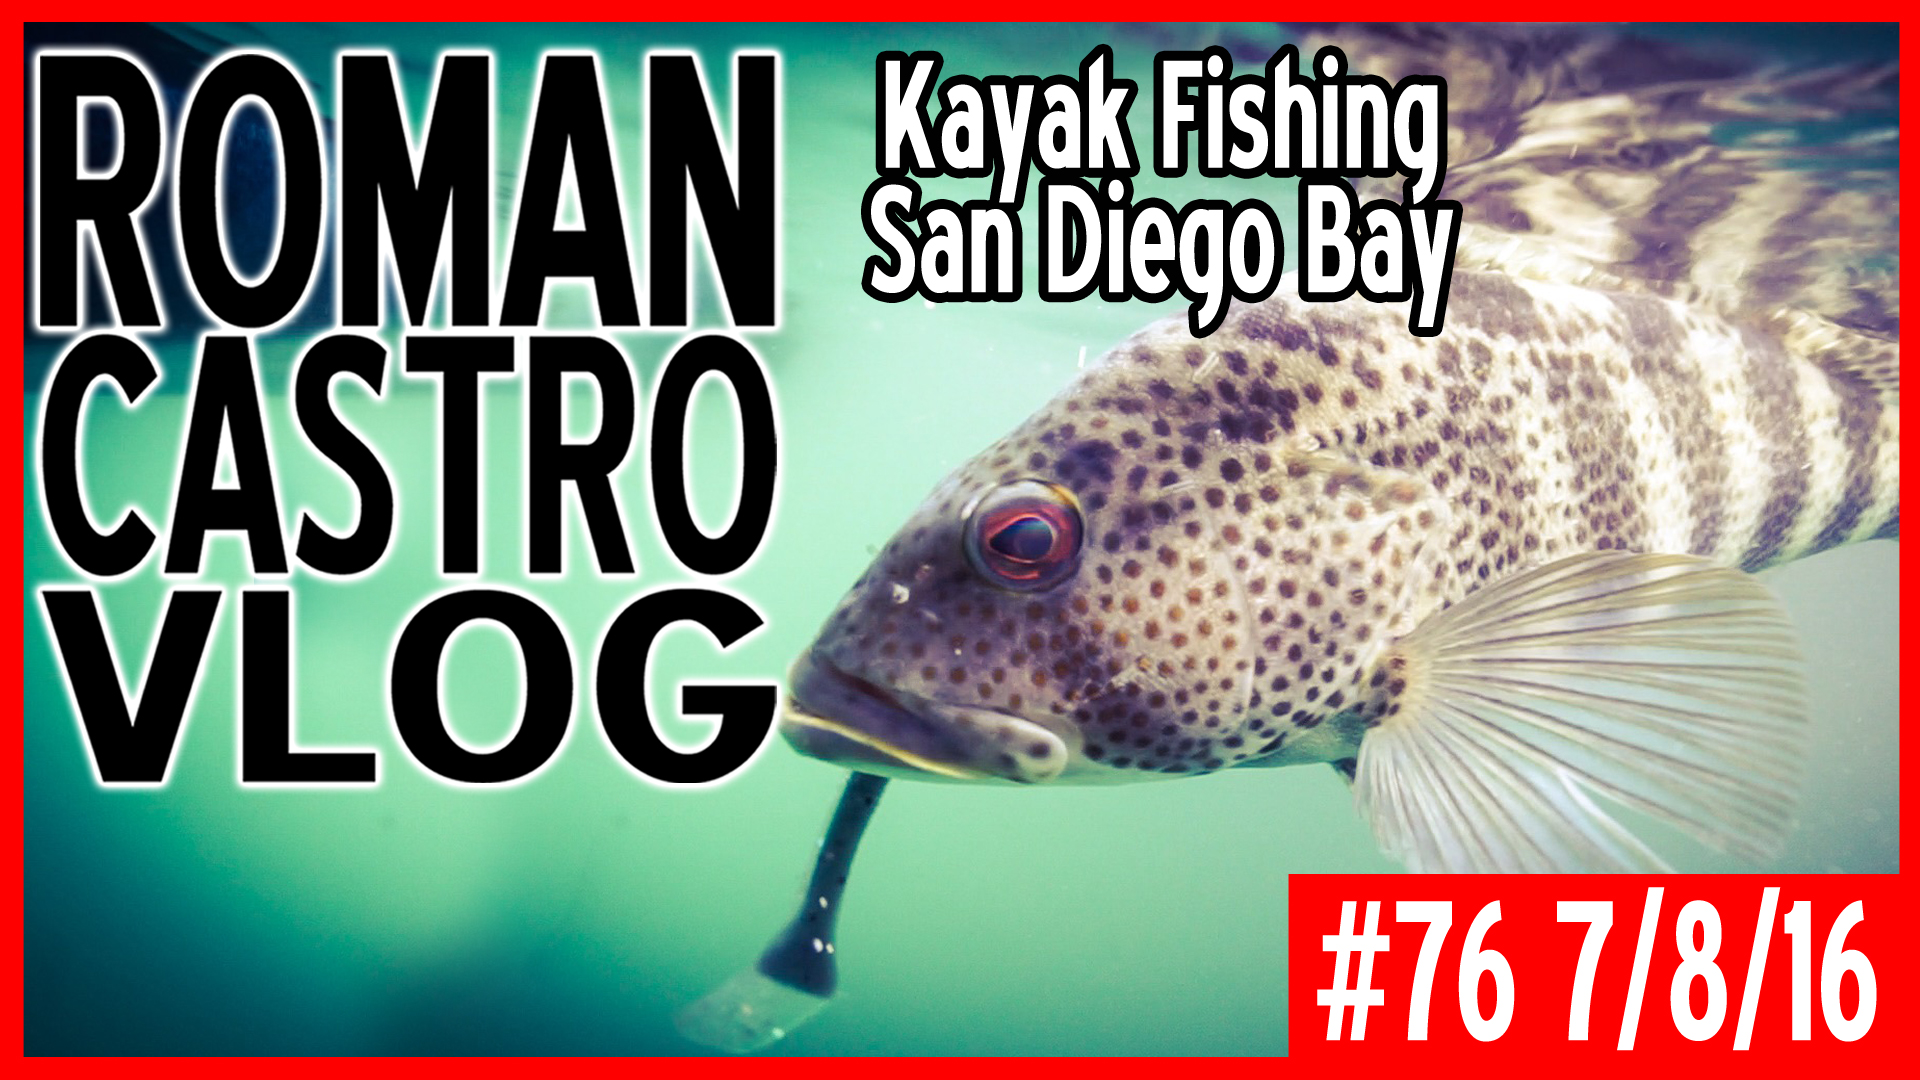 Kayak Bass Fishing San Diego Bay